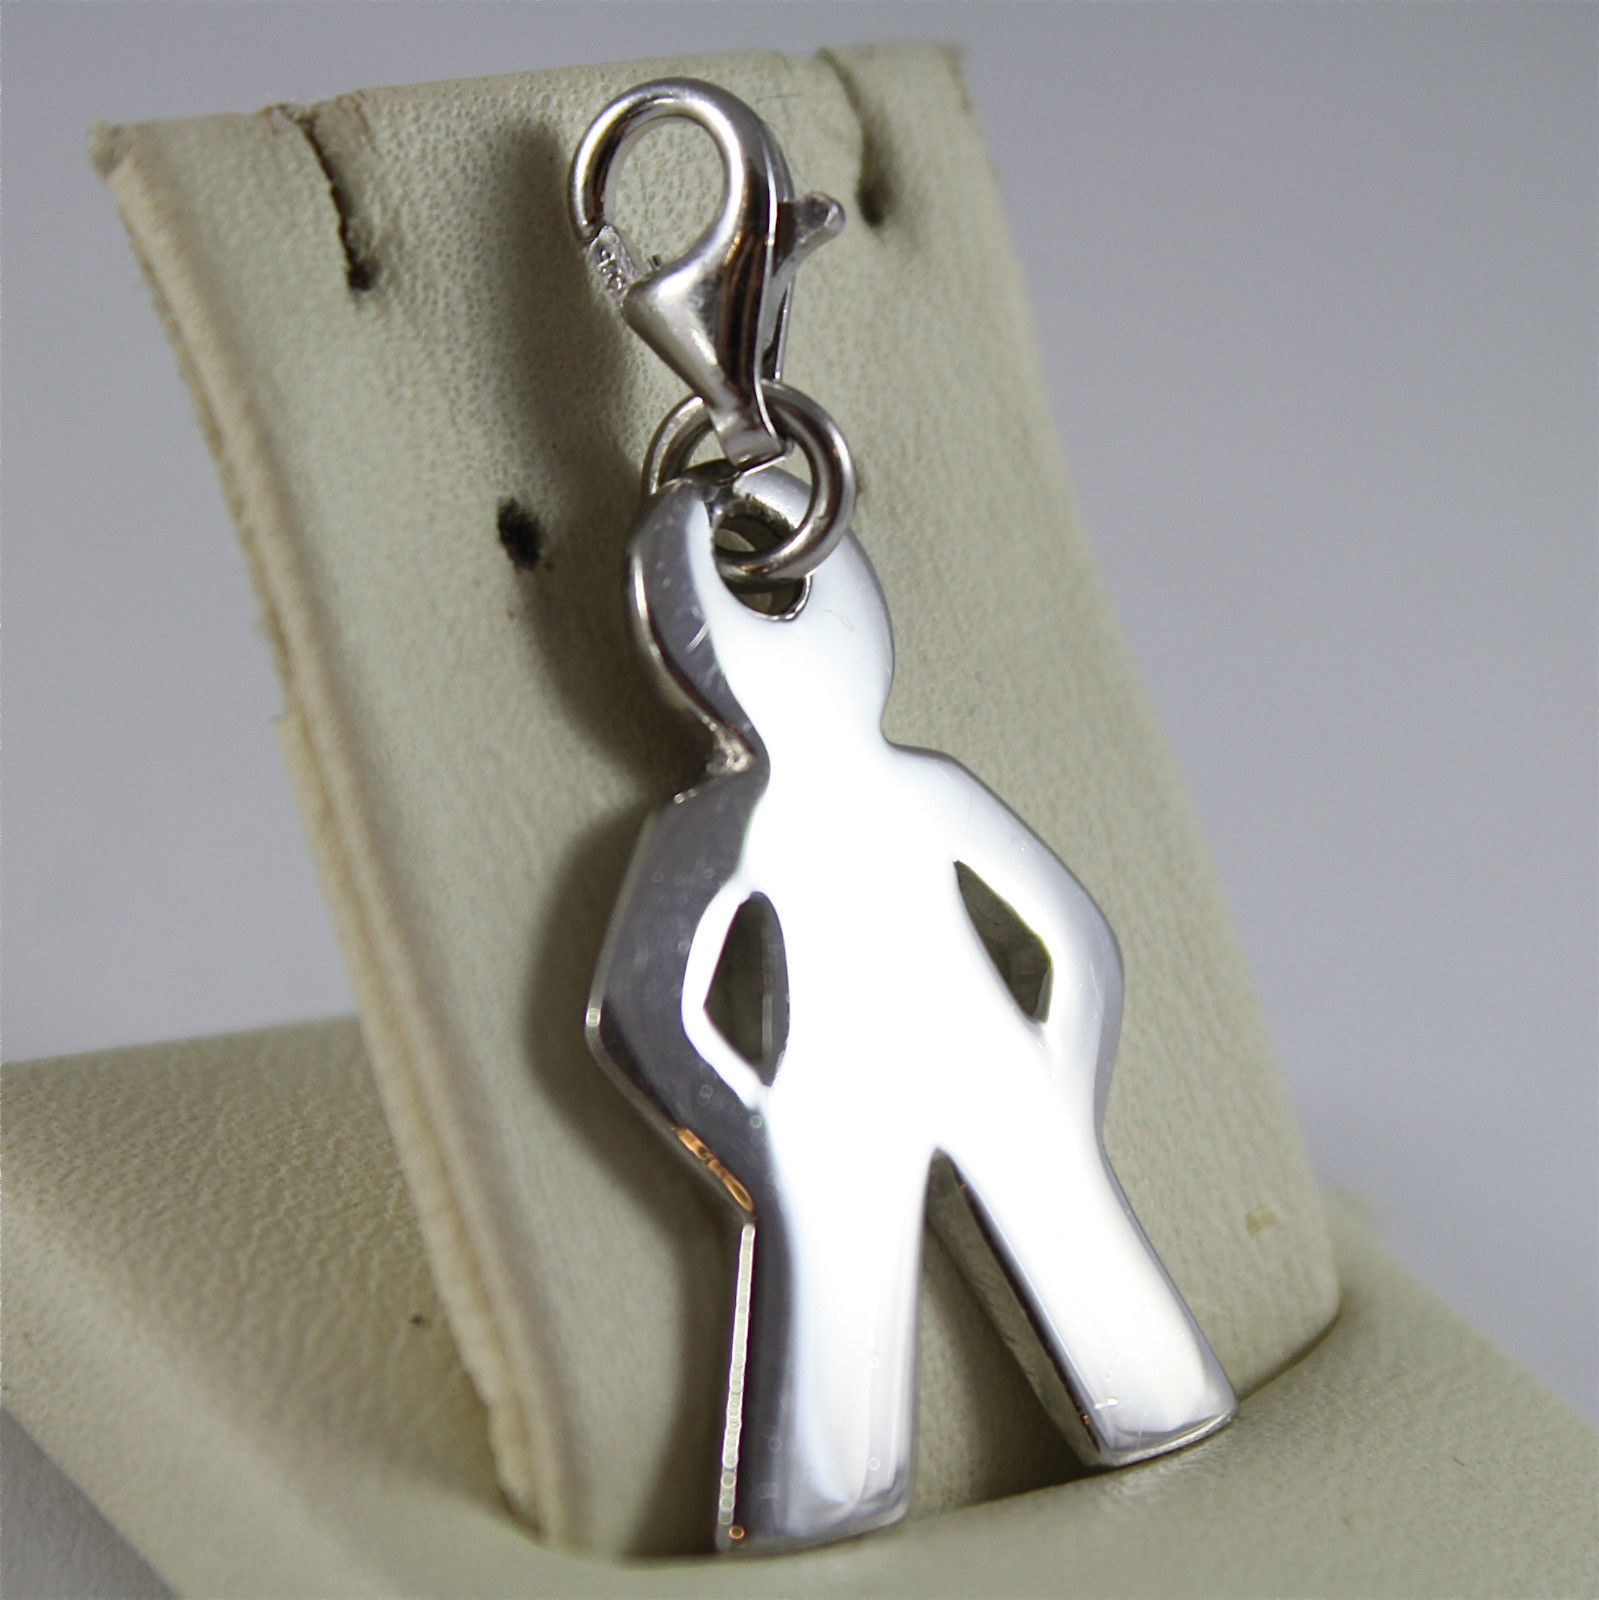 925 SILVER, AQUAFORTE PENDANT, RHODIUM TREATMENT, BABY SHAPED, LOBSTER CLASP.